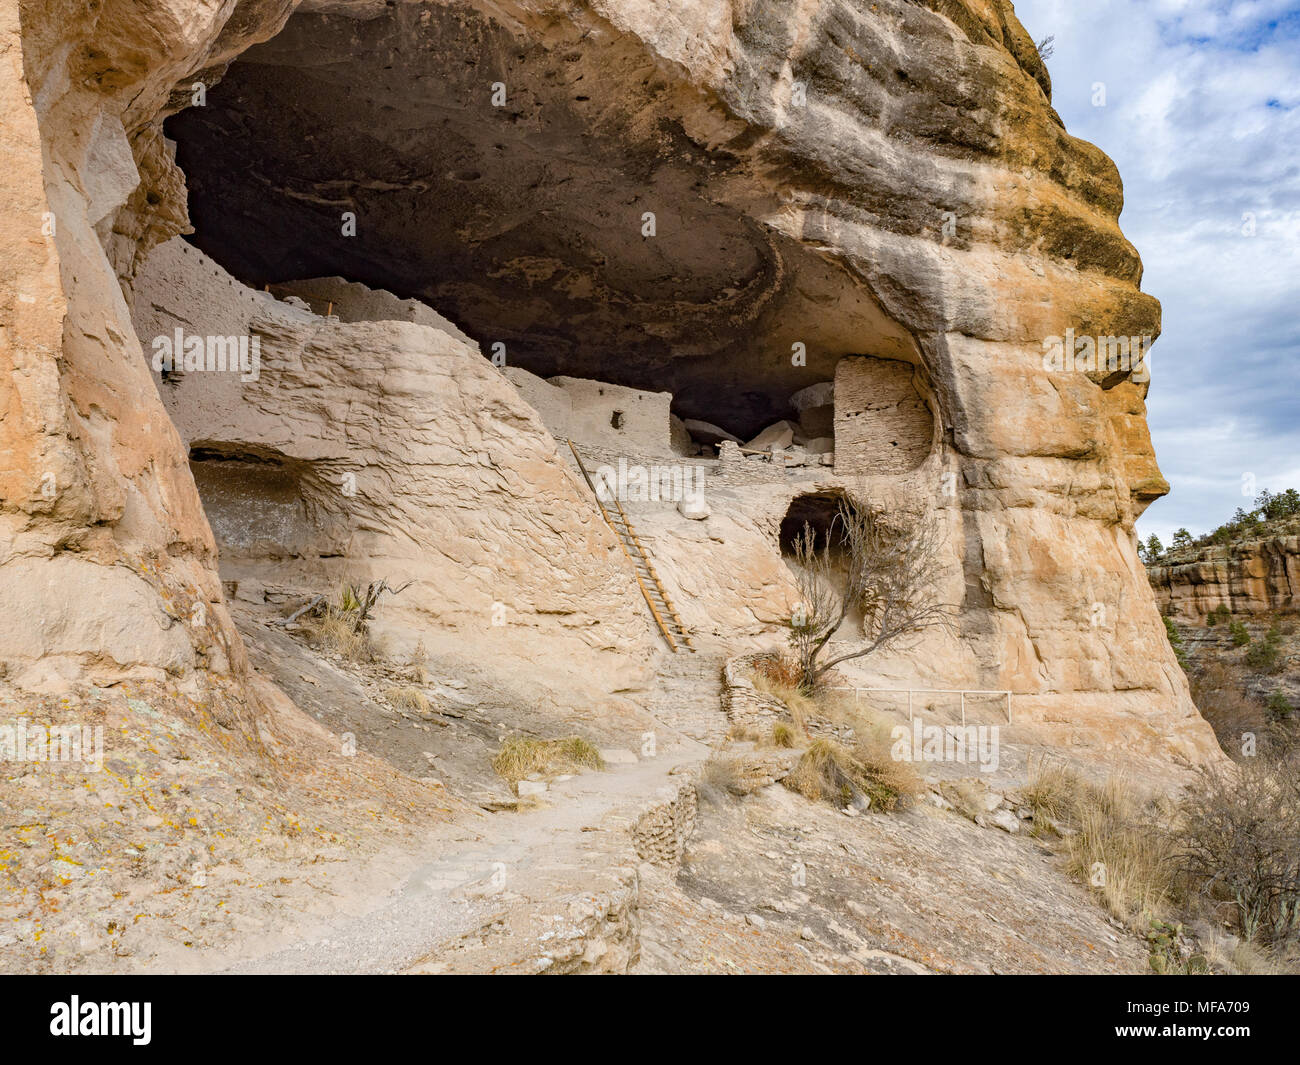 Caves And Cliffs At Gila Cliff Dwellings National Monument